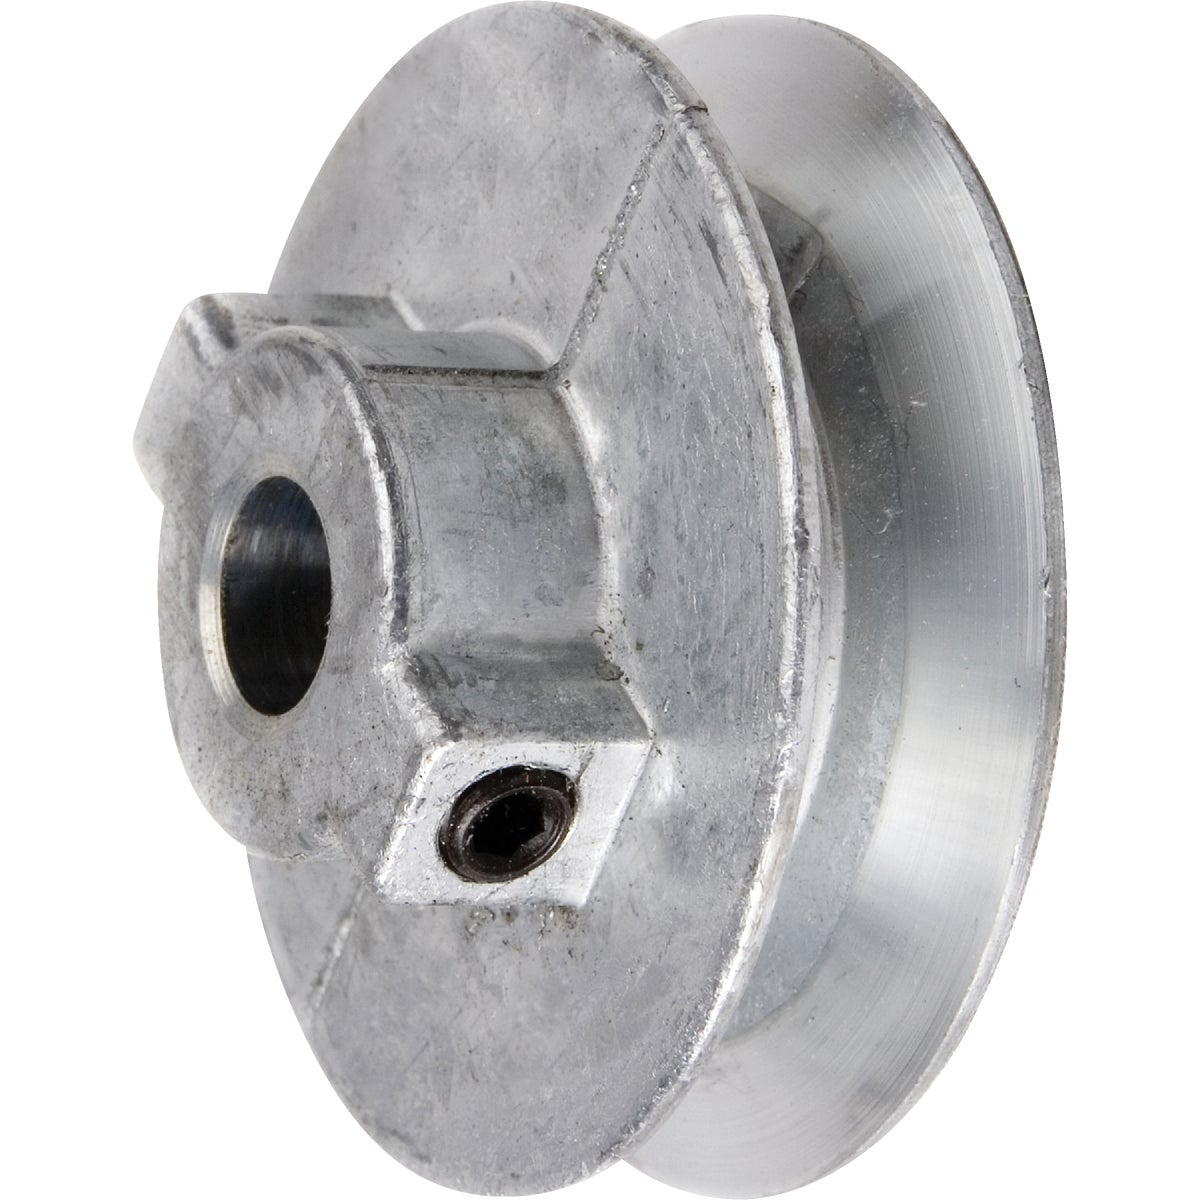 3-1/4X1/2 PULLEY - 325A5 by Chicago Die Casting